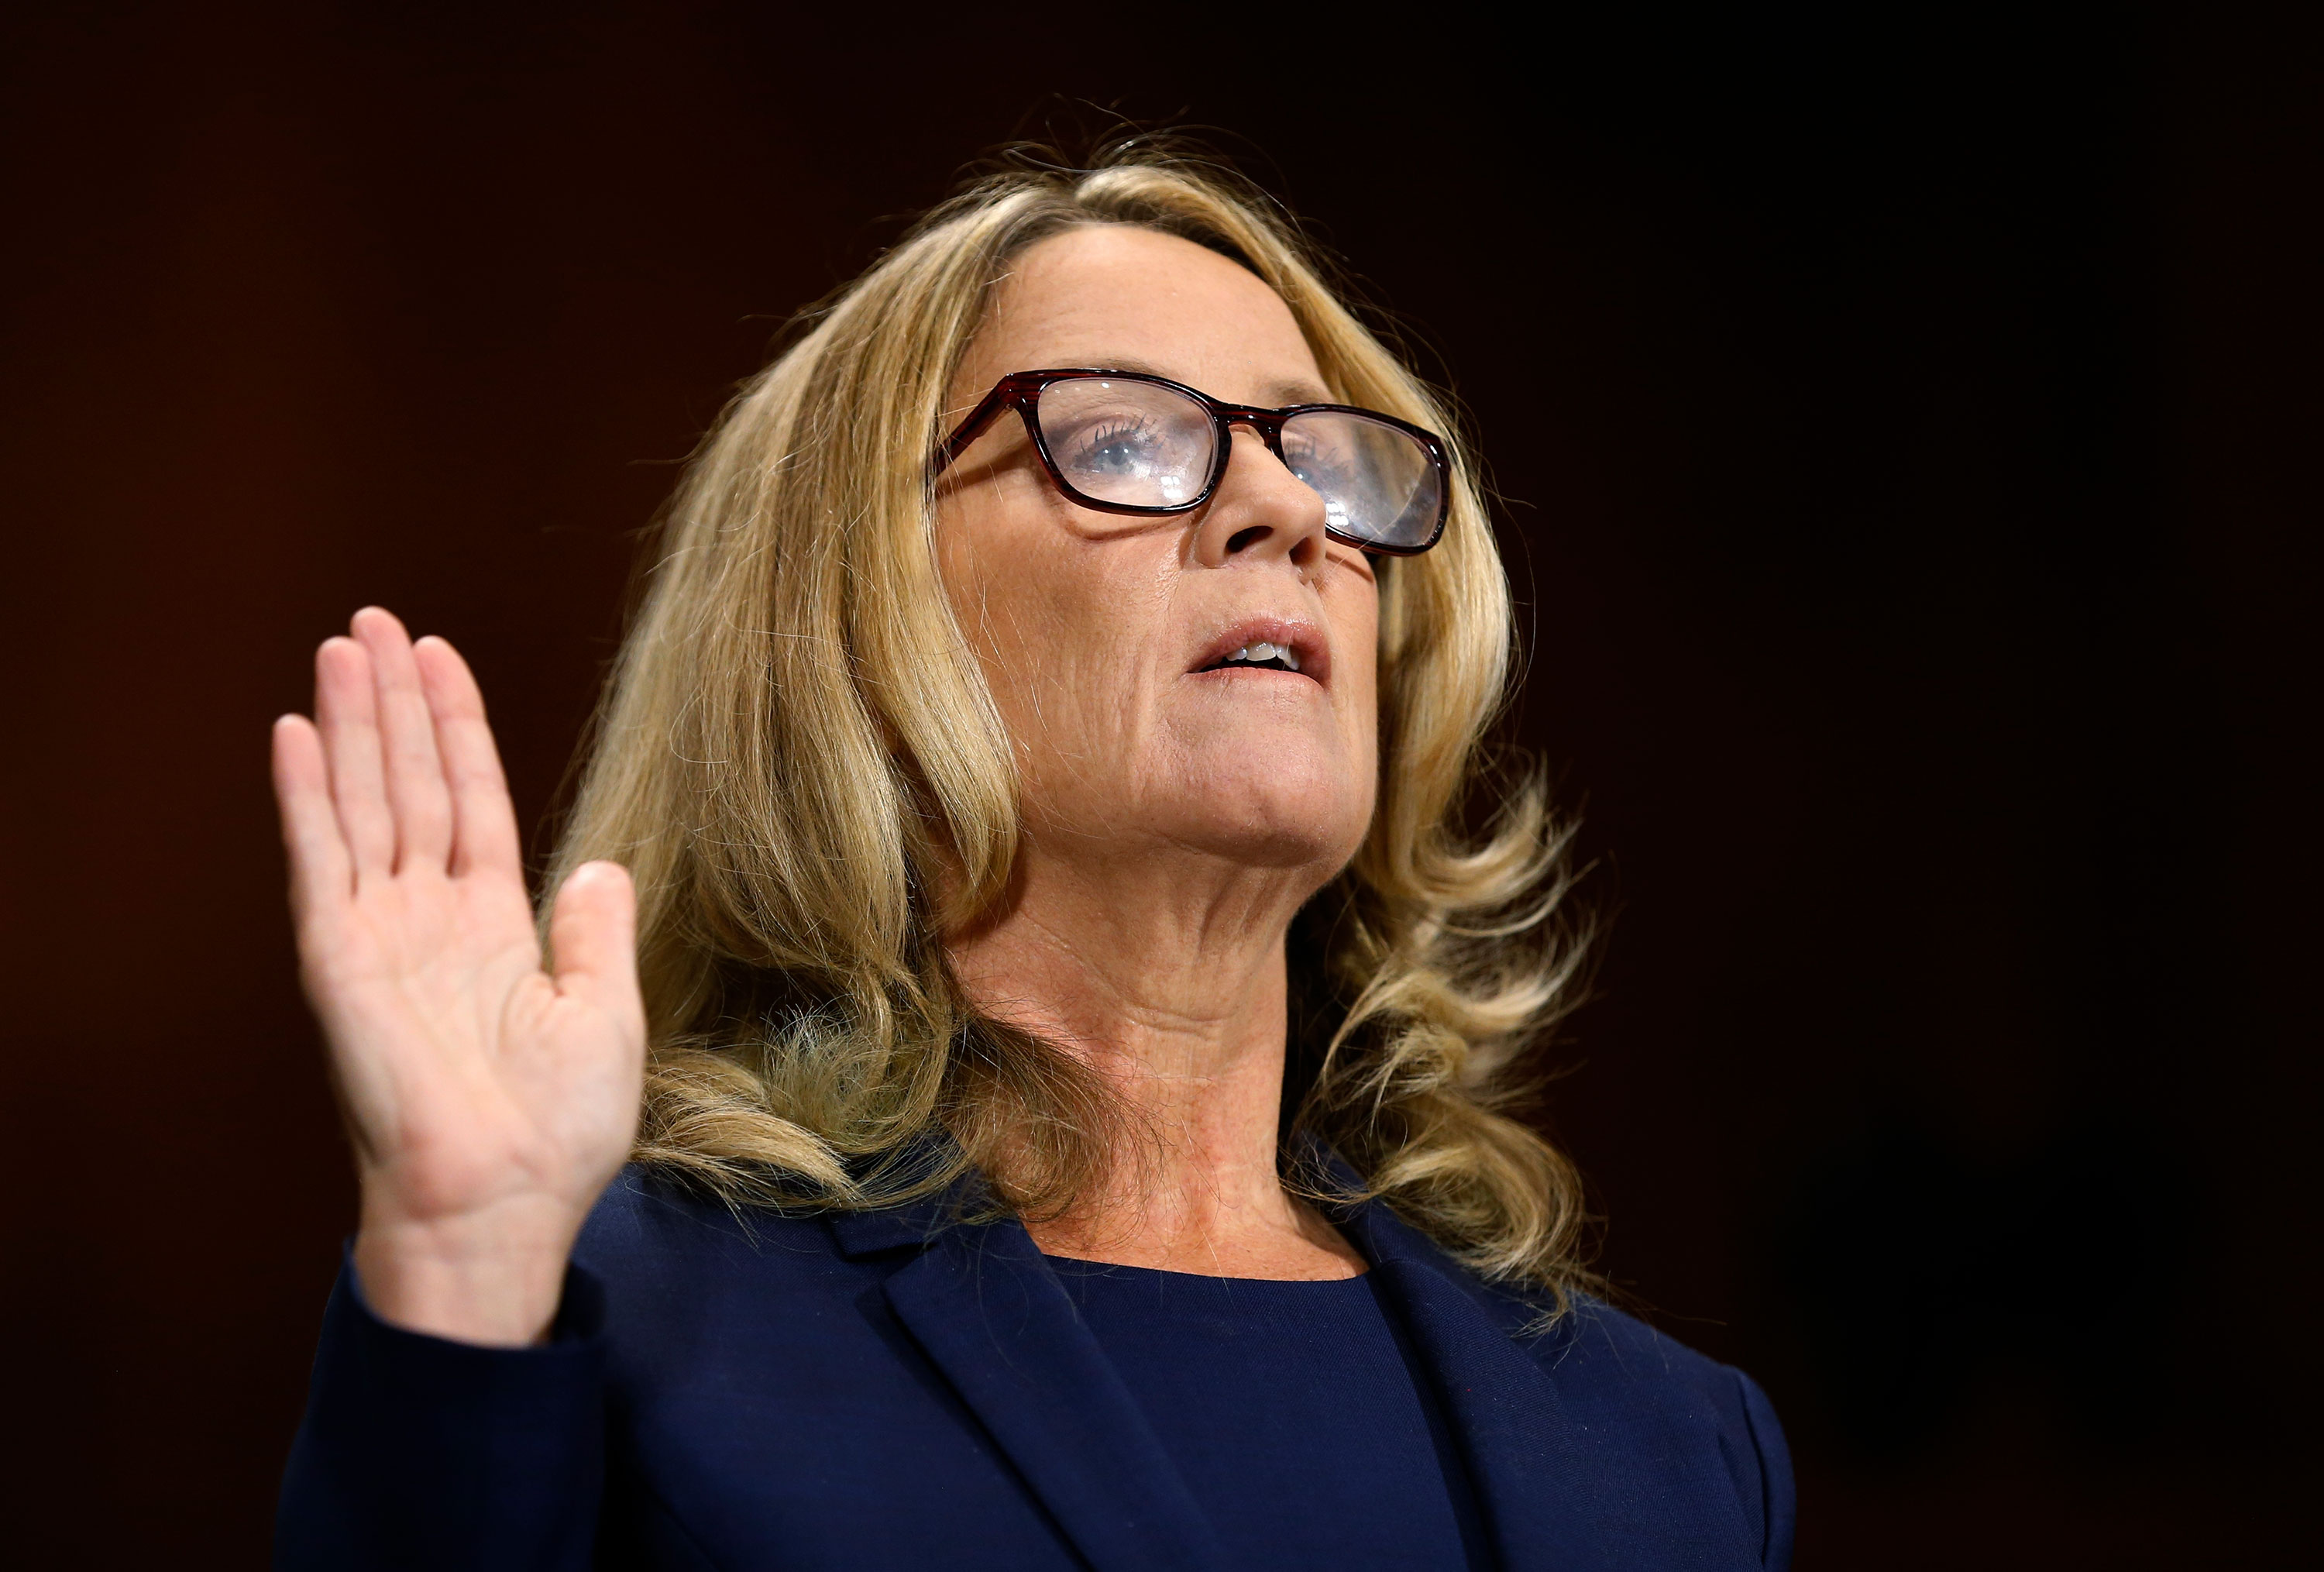 Watch Christine Blasey Fords Opening Statement Cnn Video Confirmation And Latest News In Senate Judiciary Committee